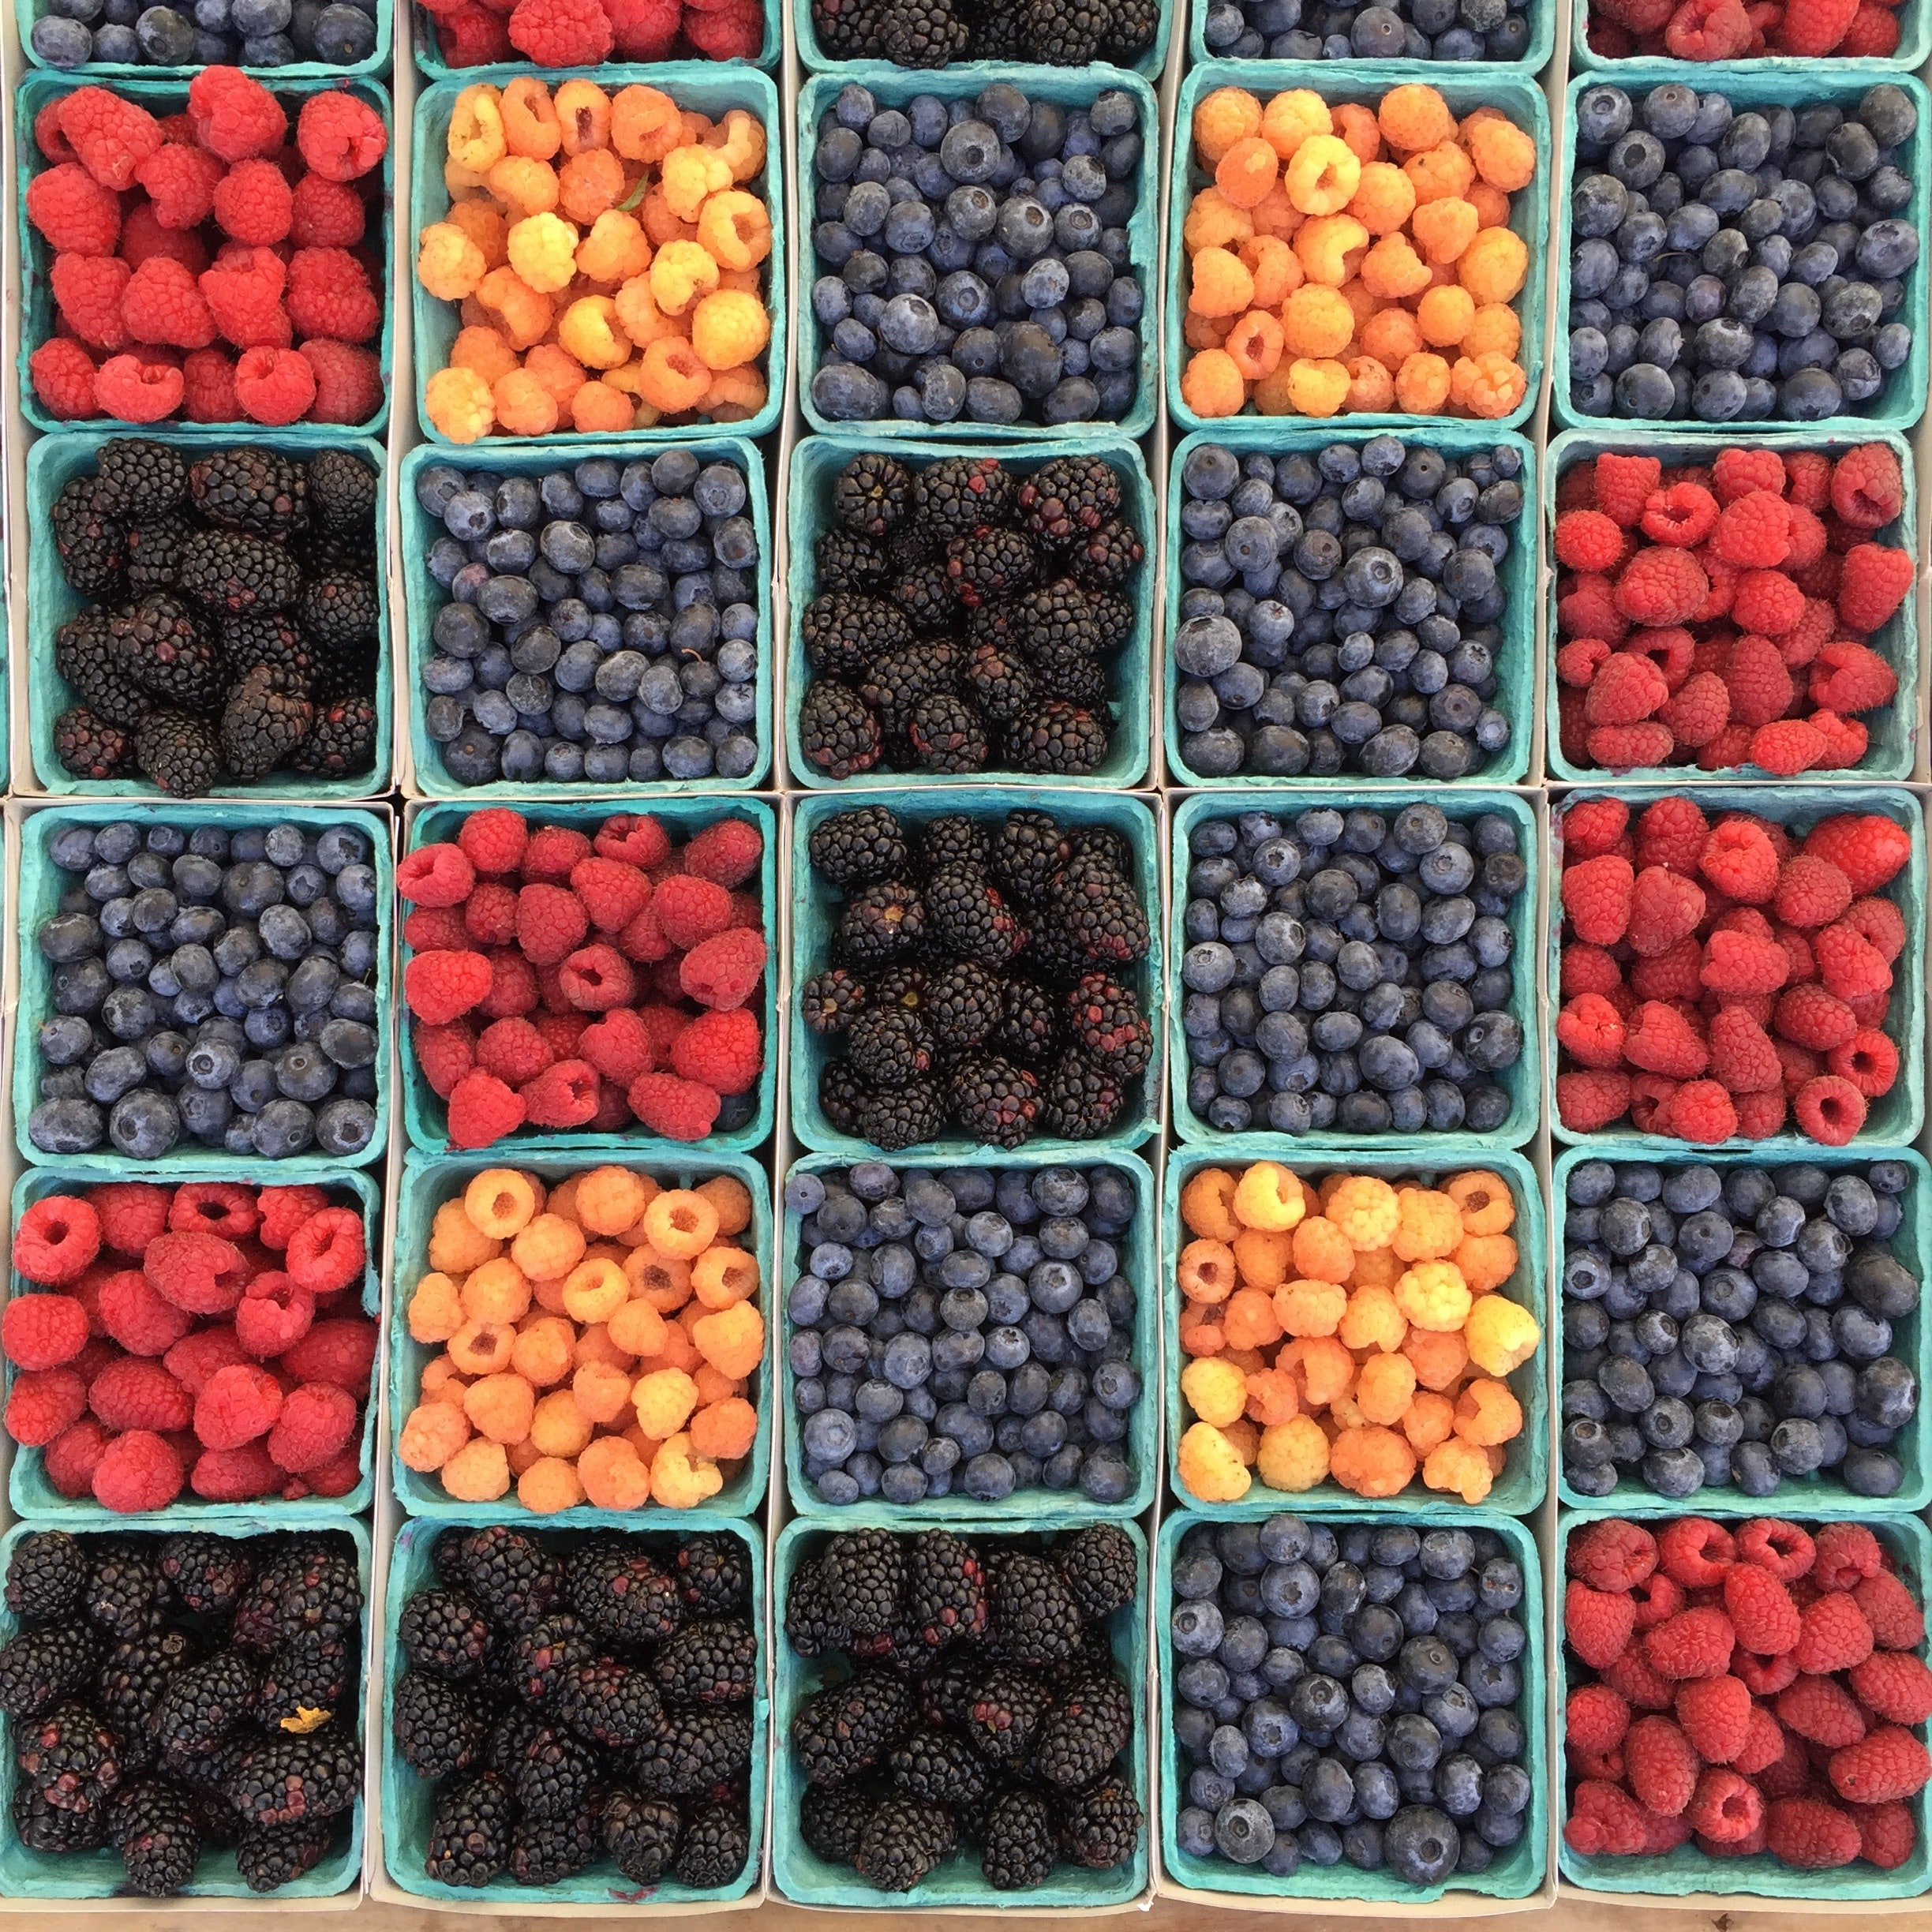 Berries are high in phytoestrogens and therefore, very good for your womb!